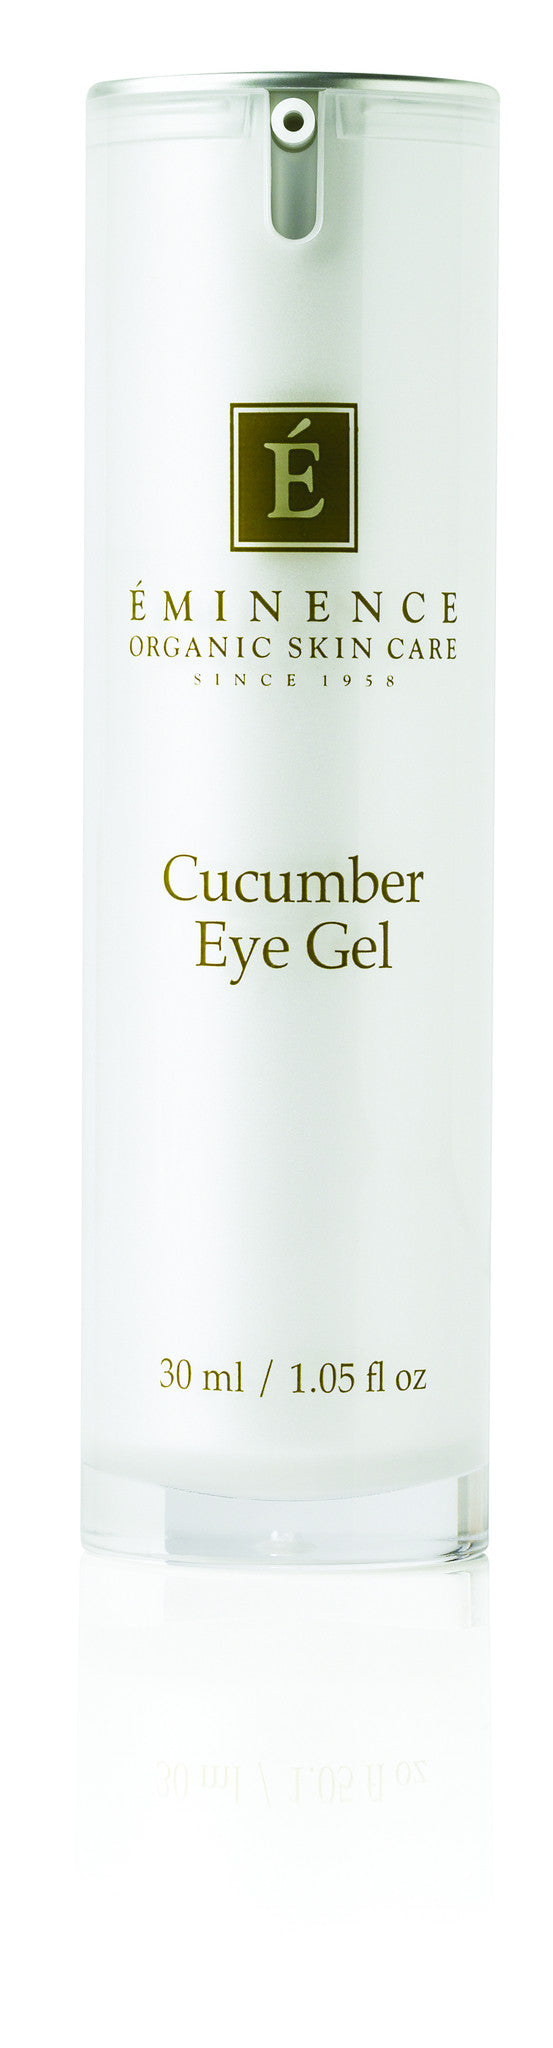 Cucumber Eye Gel - Organic Skin Therapy